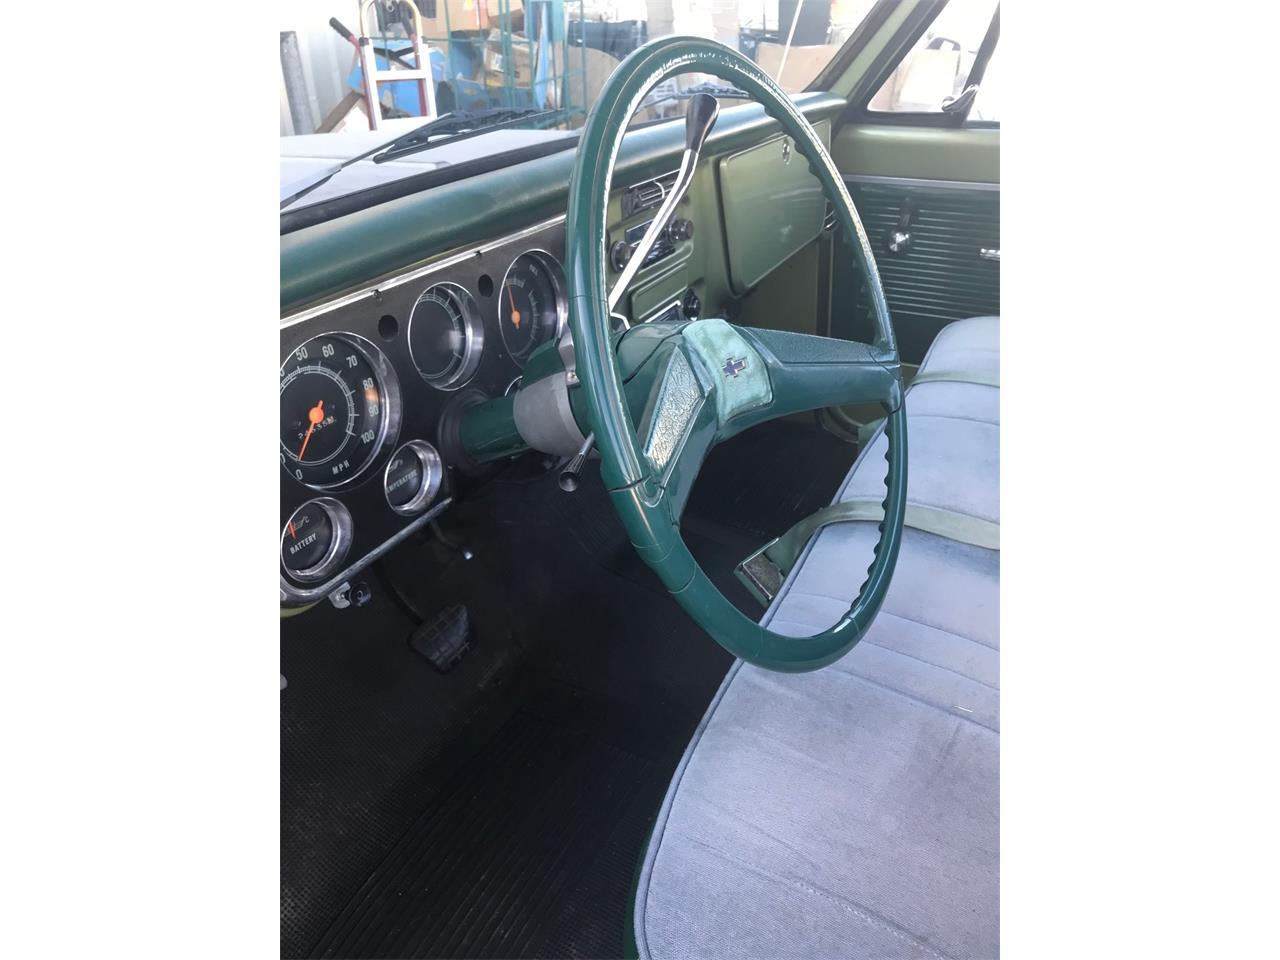 Large Picture of 1969 C10 located in Reno Nevada - $16,795.00 Offered by a Private Seller - OERQ